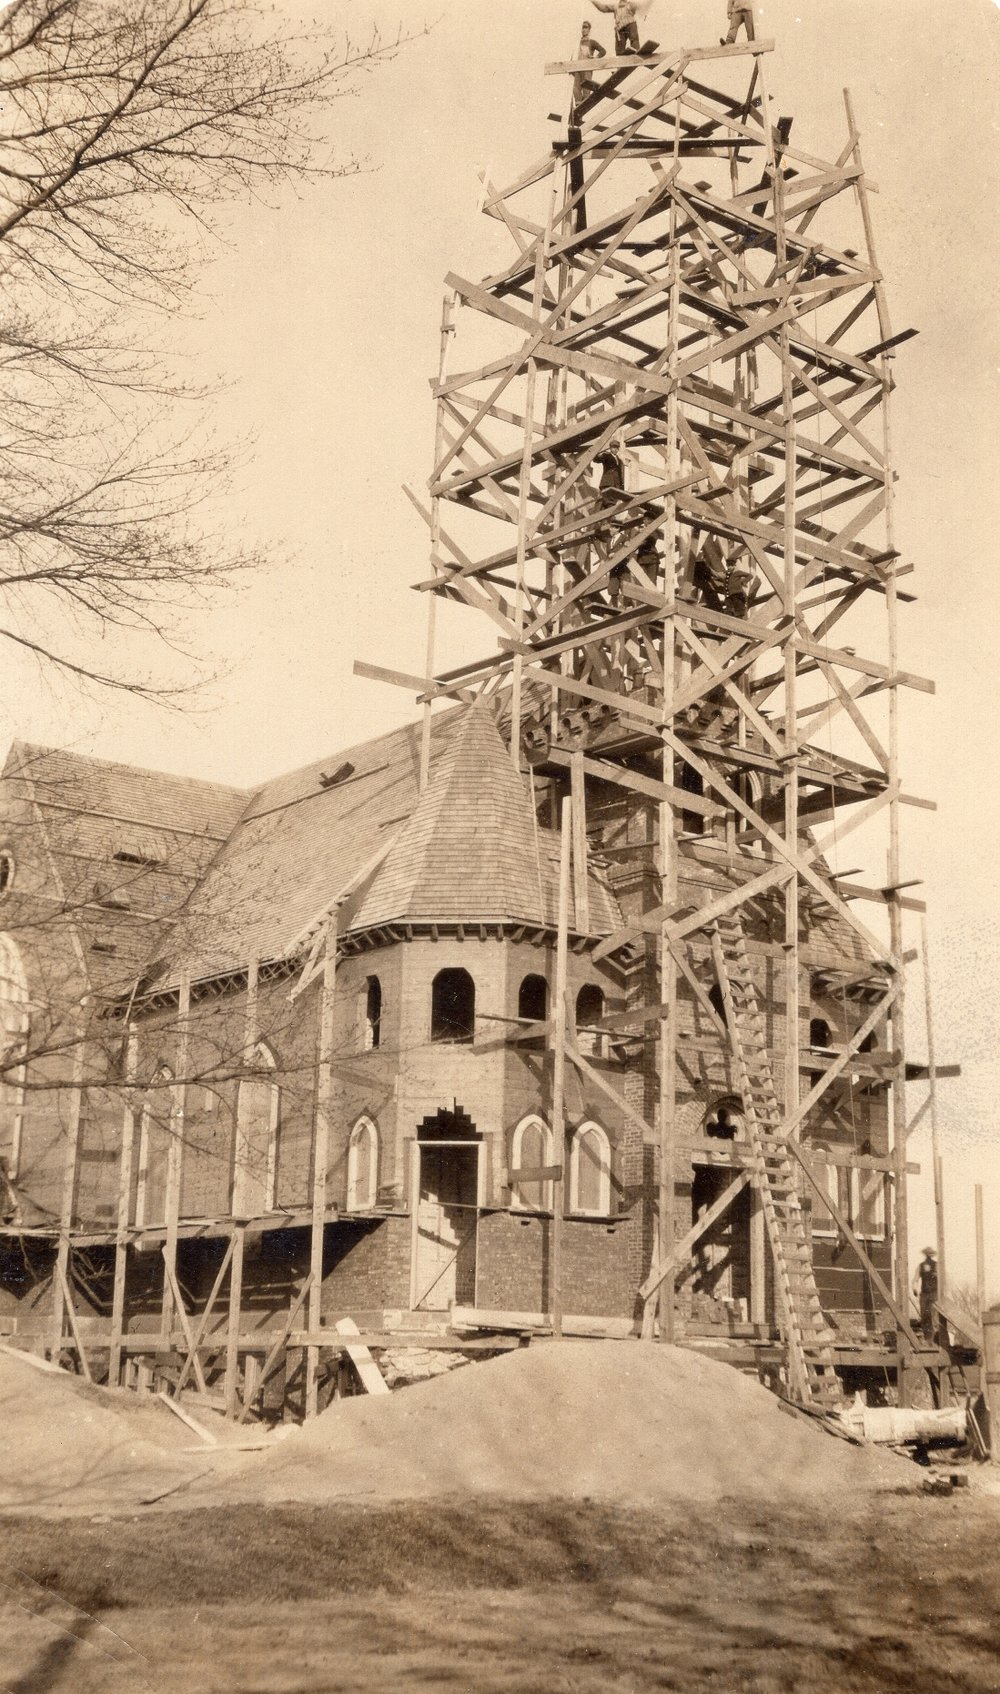 A new church was built on Madison Street in 1913